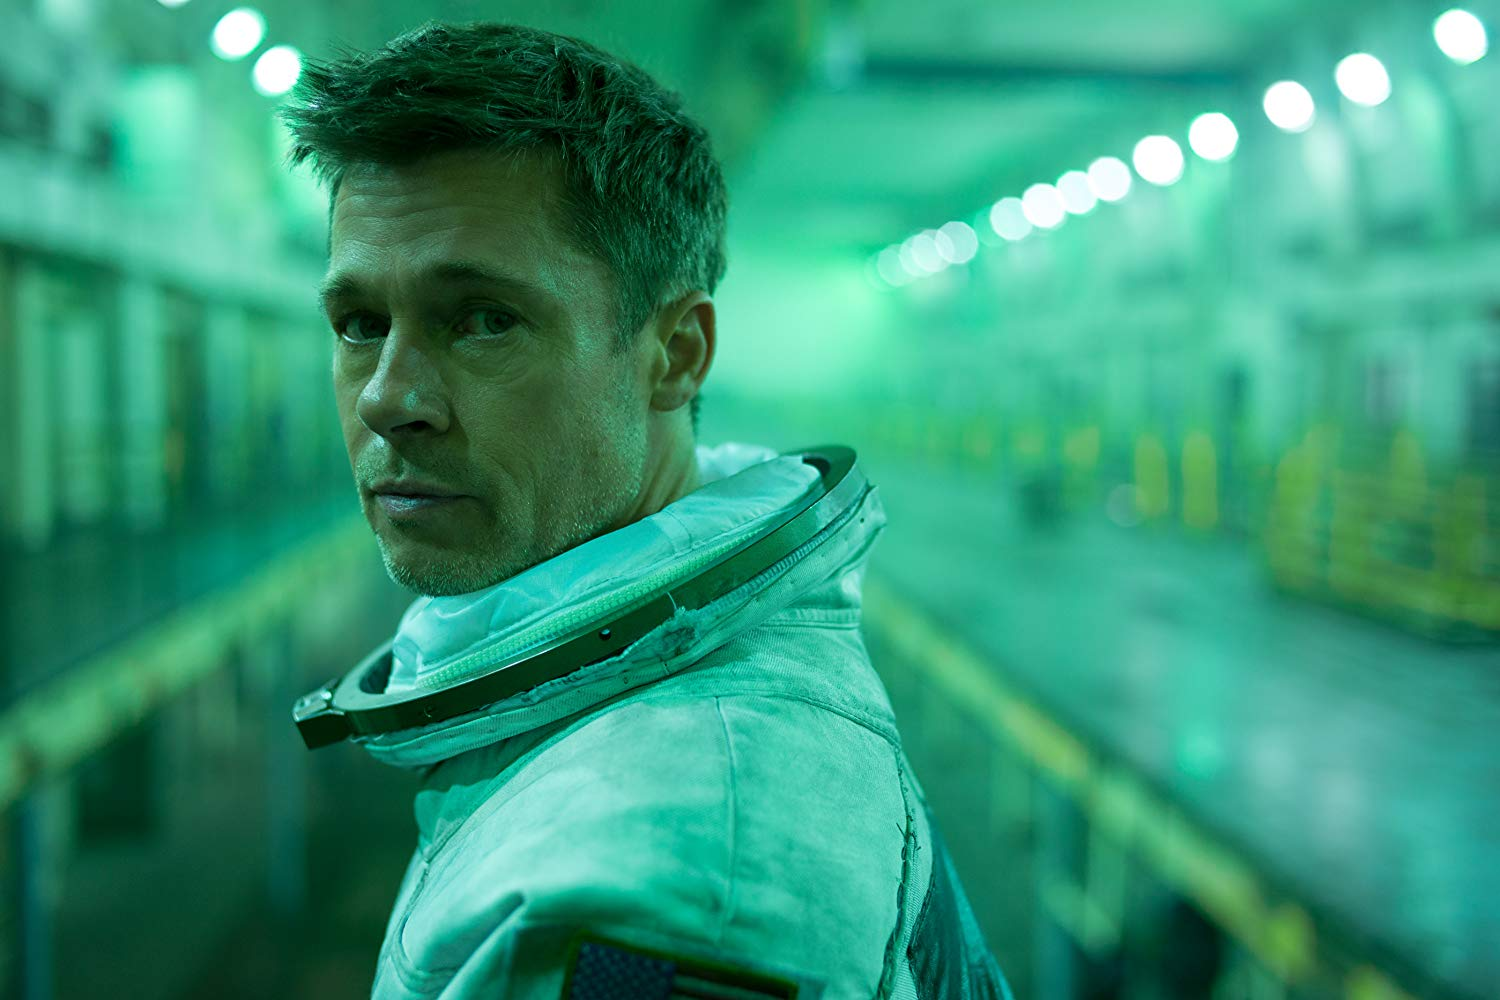 Brad Pitt, who plays Roy McBride, leads the audience on a self-reflective journey.